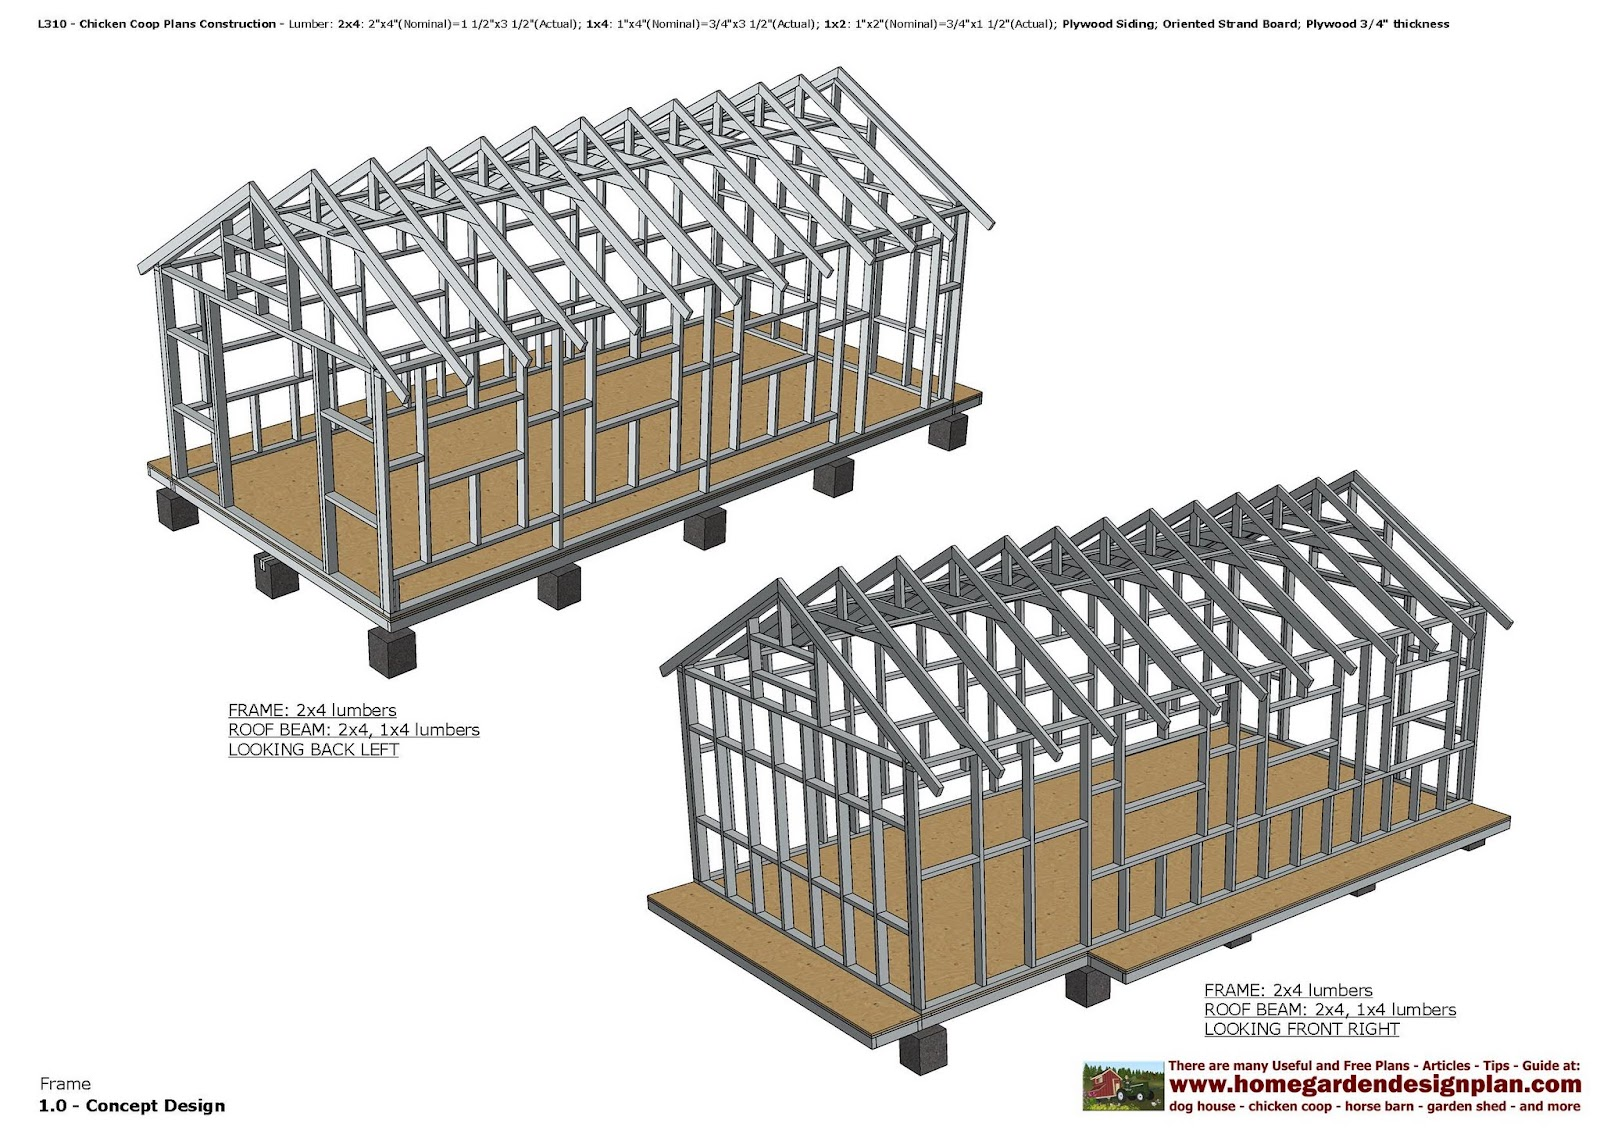 Home garden plans l310 chicken coop plans construction for A frame chicken